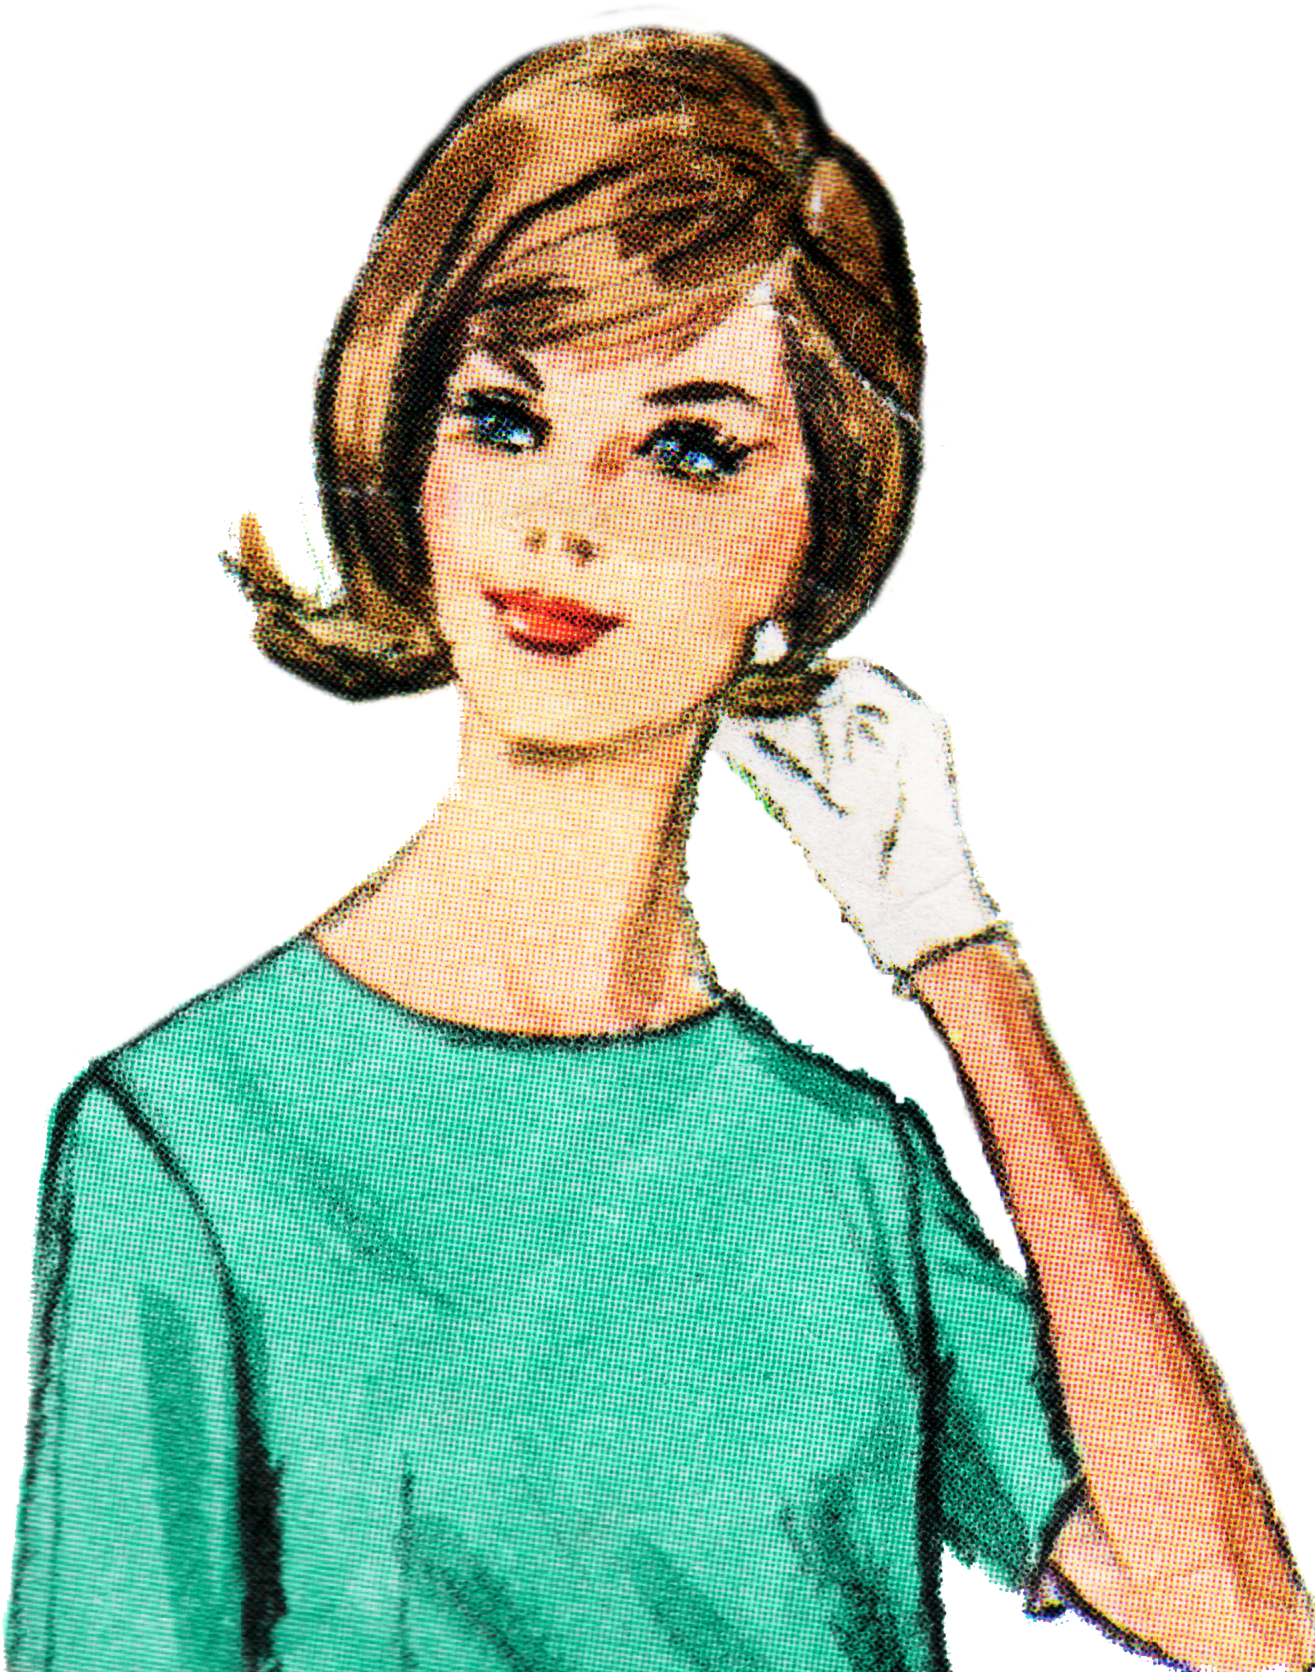 Retro woman clipart free image black and white stock Retro Lady Clip Art Free - Cartoon Retro Lady Png ... image black and white stock